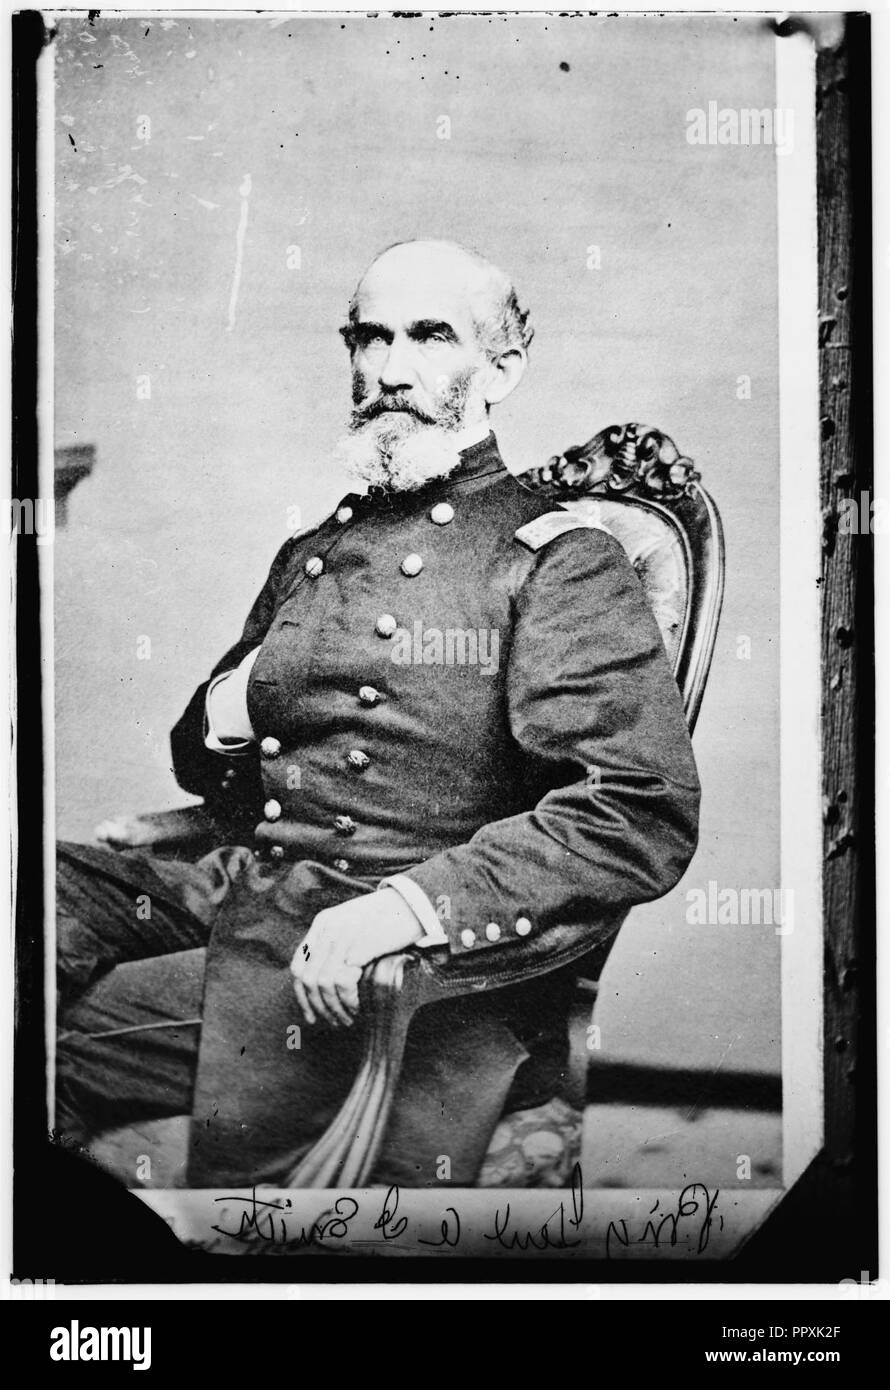 Brig. Gen. A.J. Smith - Stock Image